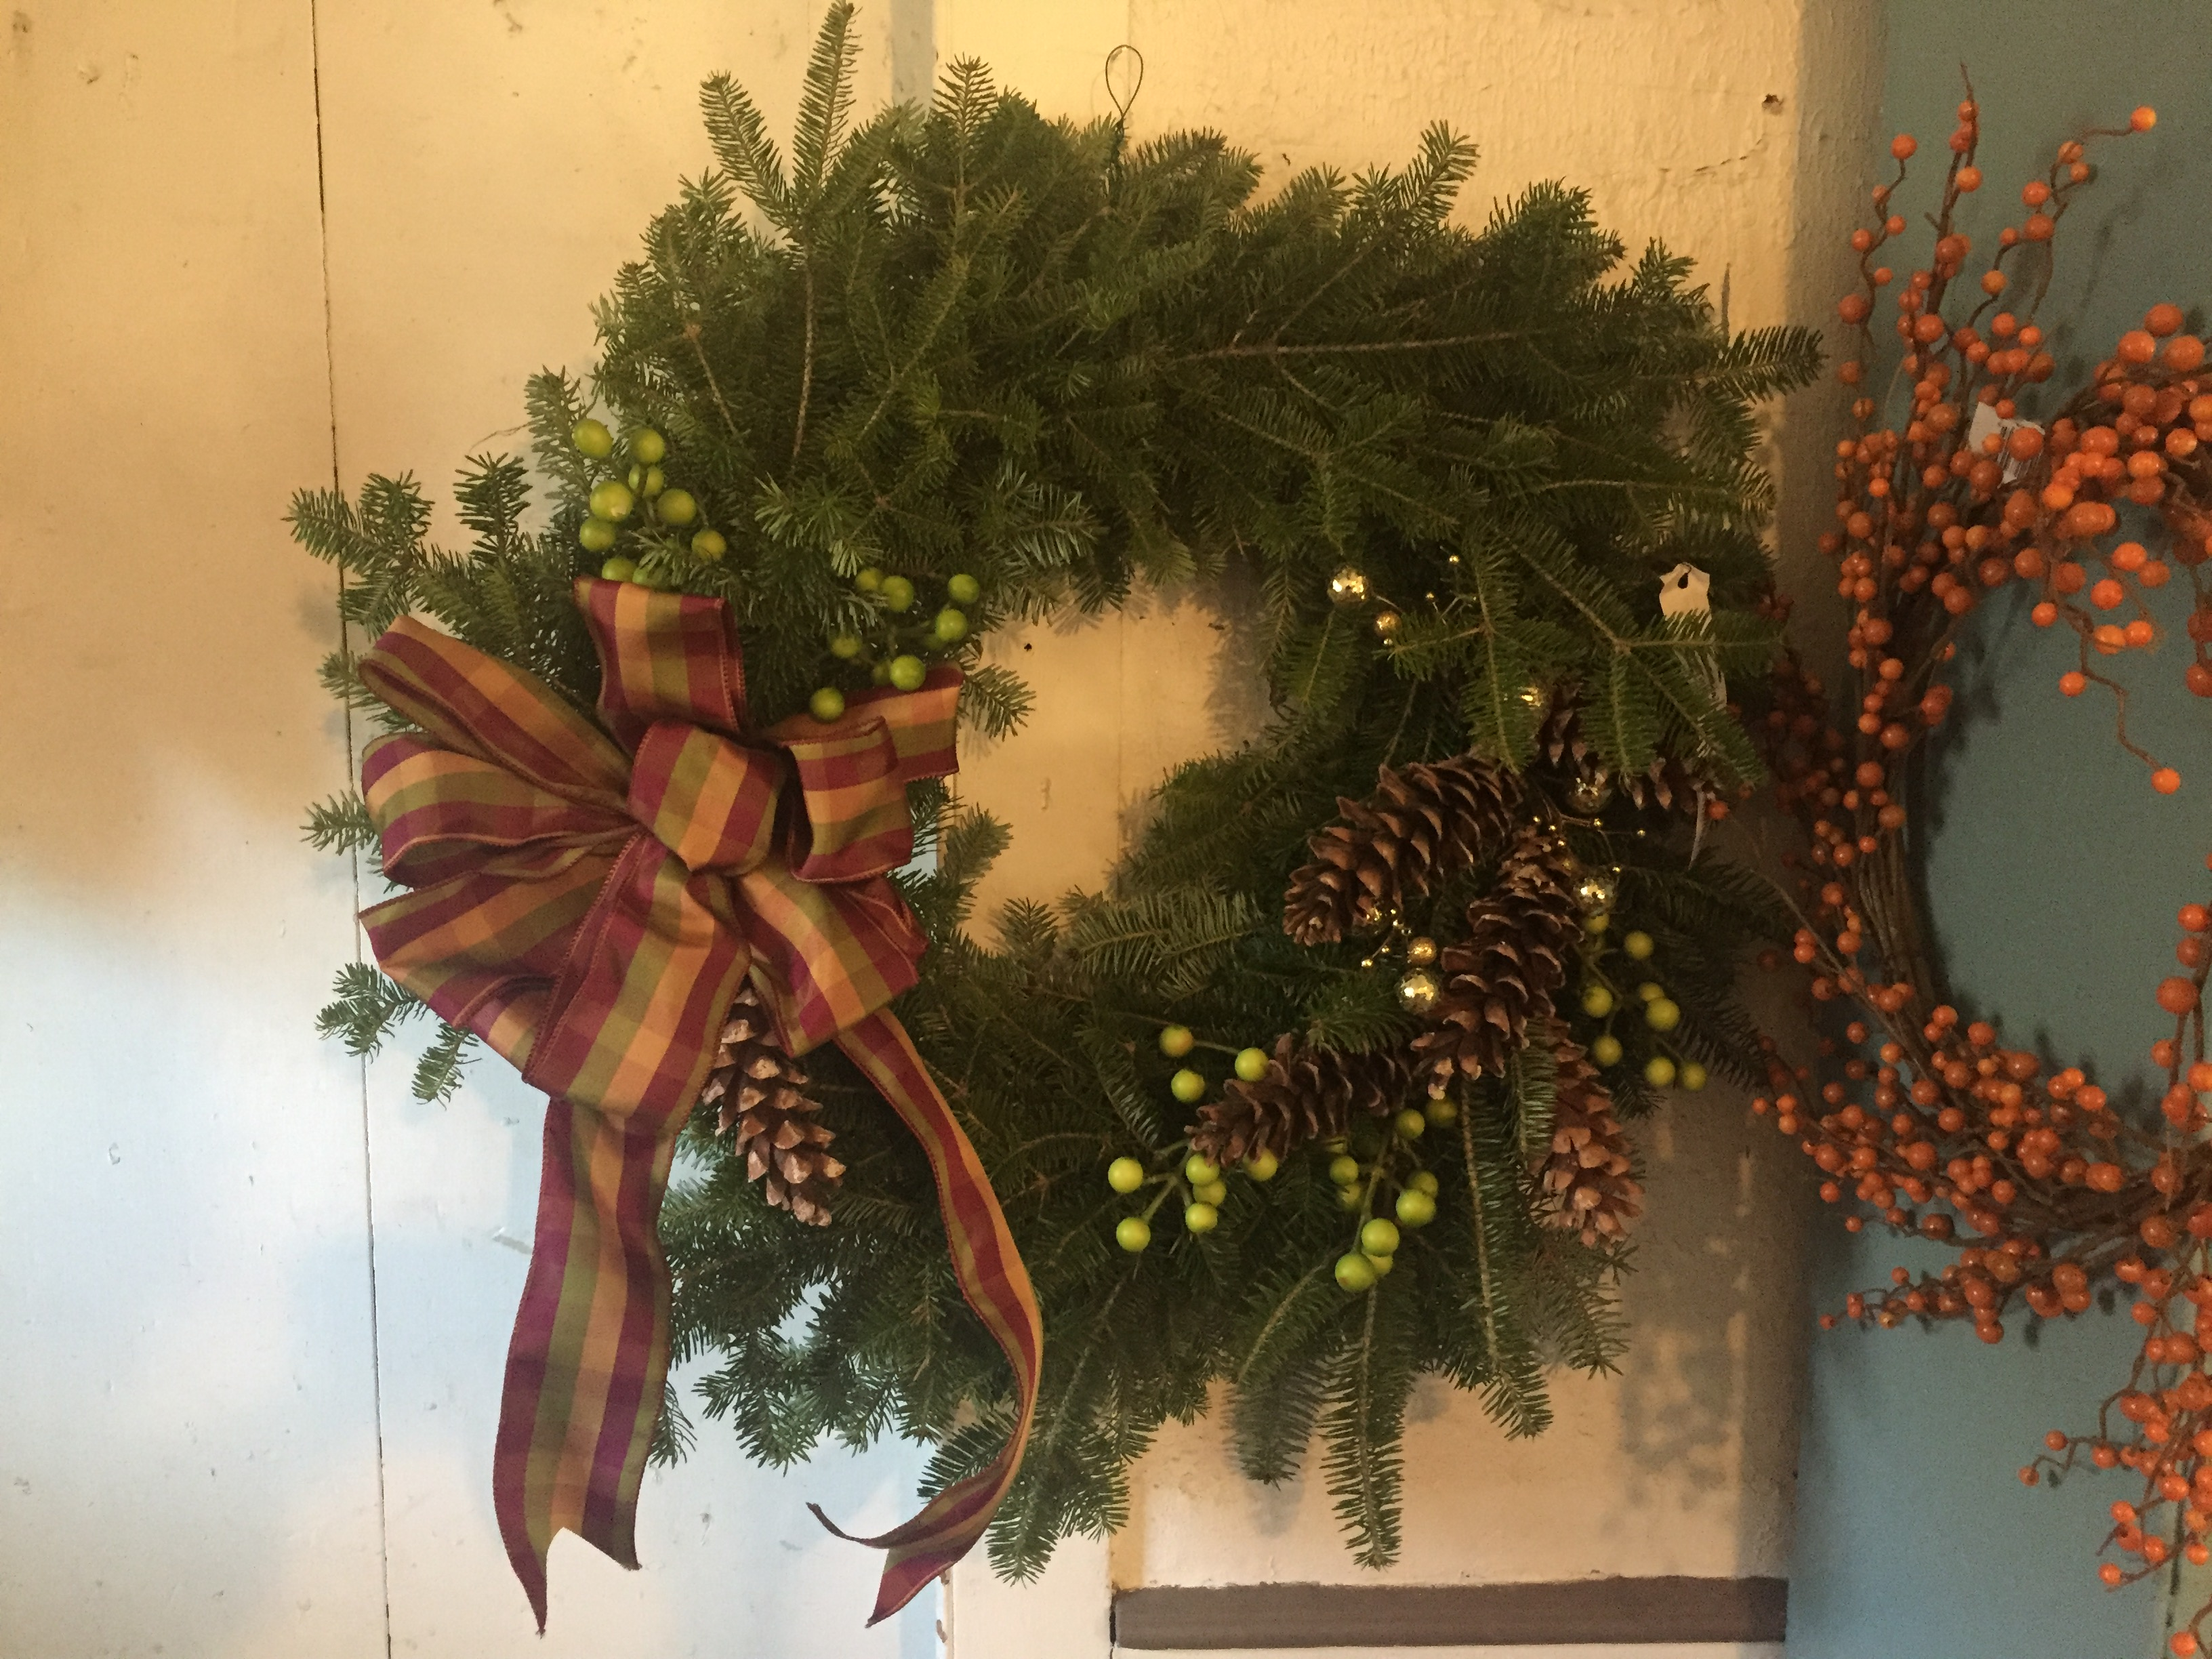 Loring Greenough House Wreath Fundraiser 2019